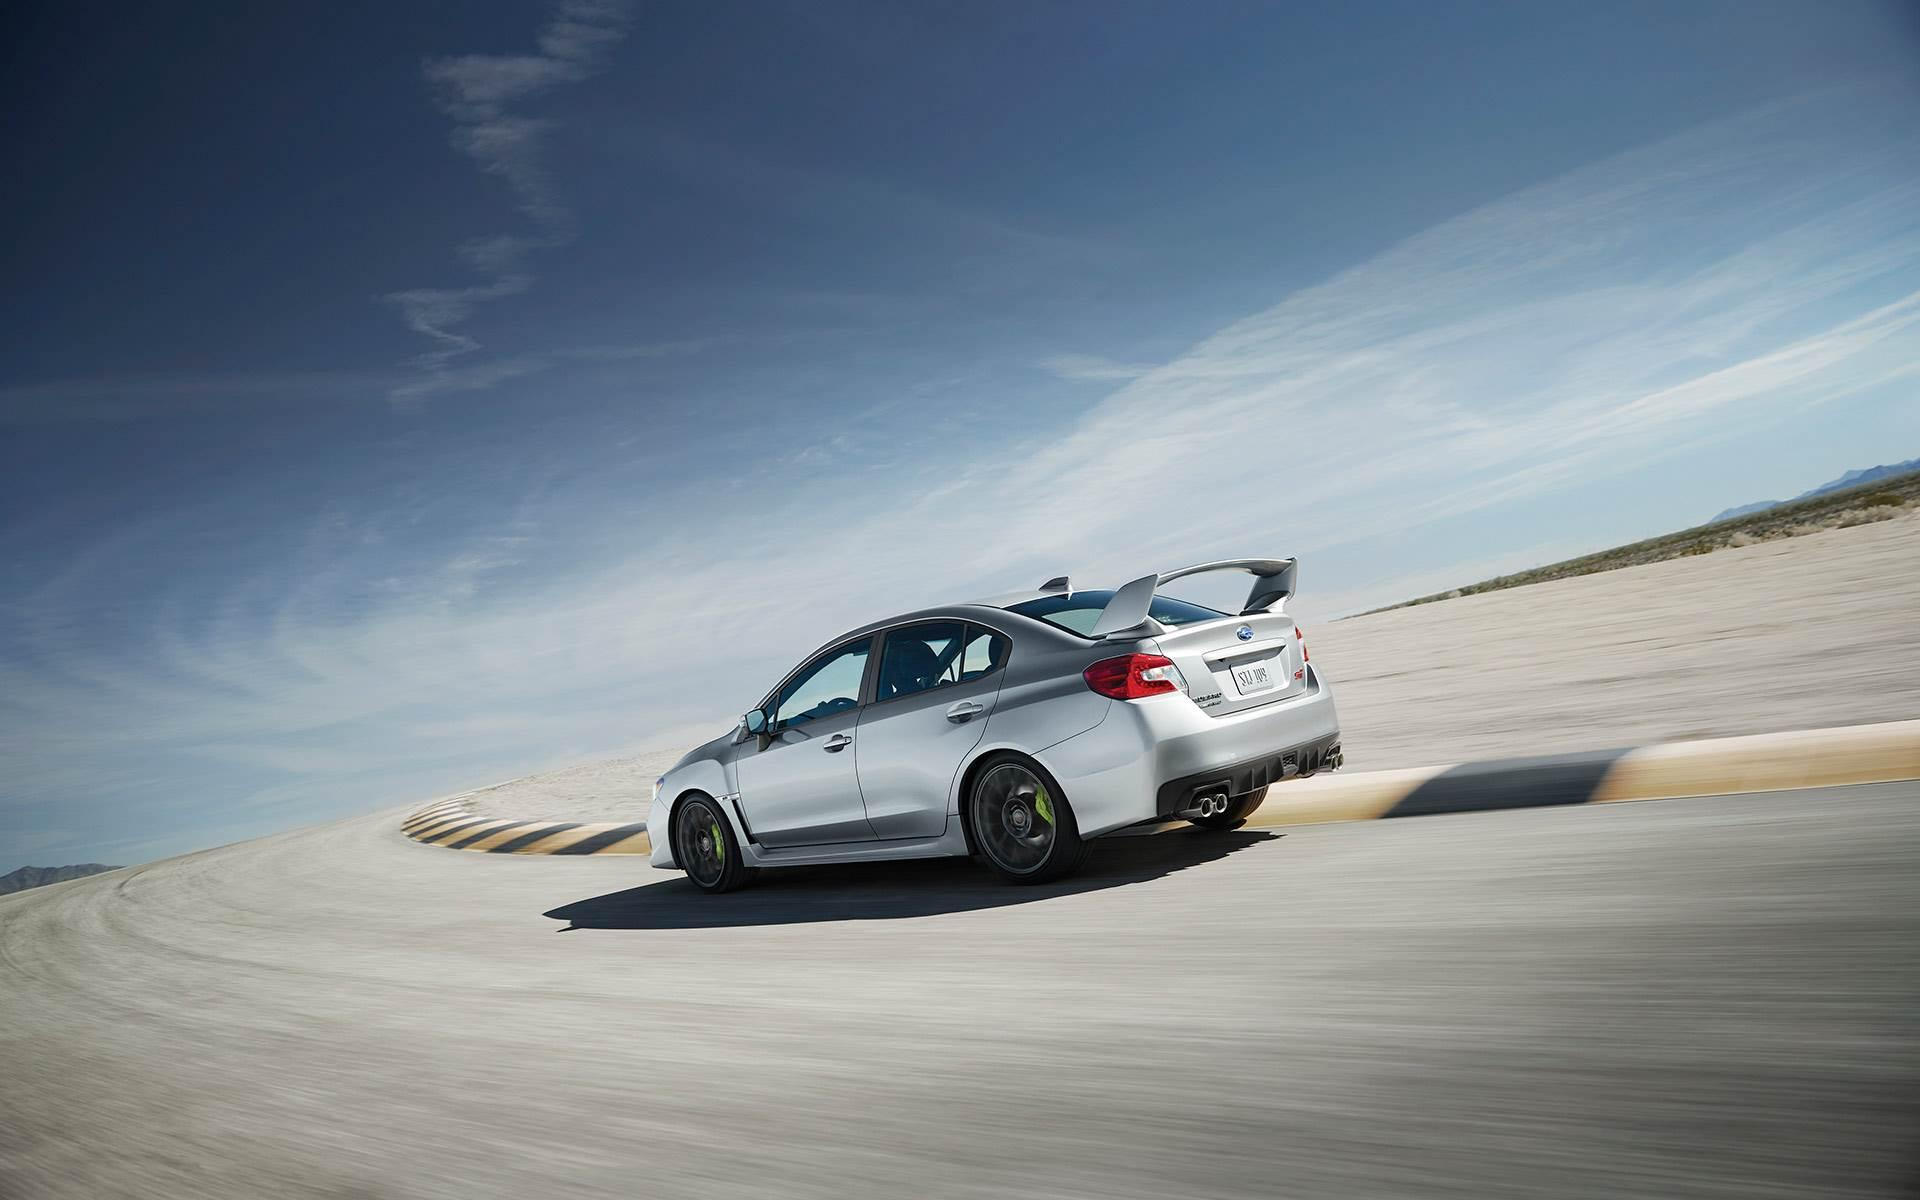 2019 Subaru WRX STI widescreen 4k hd wallpaper - Latest Cars 2018-2019